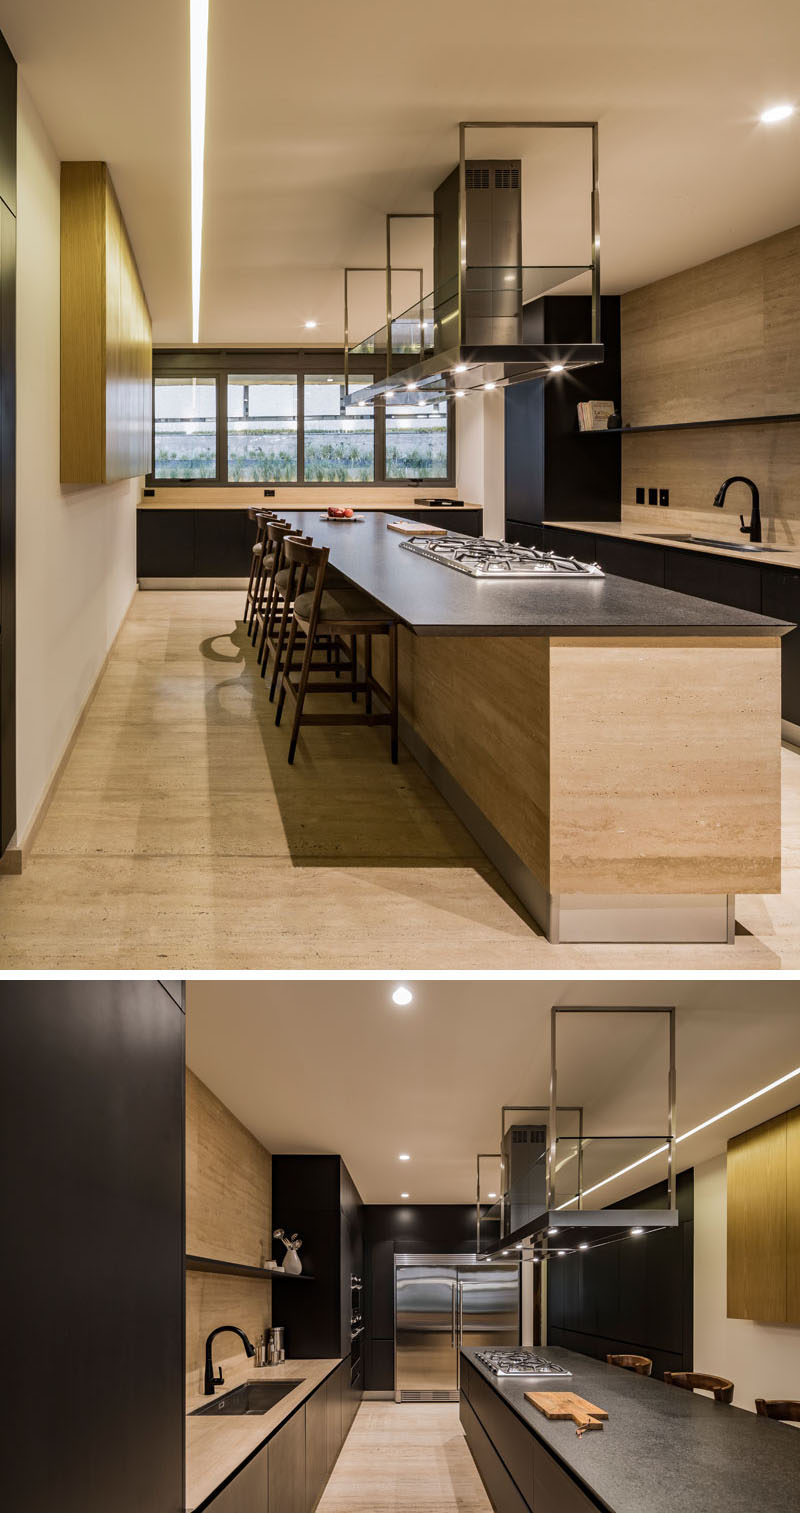 A large island is central to this modern kitchen, and the overhang provides a place for people to sit at. #KitchenDesign #LargeKitchenIsland #ModernKitchen